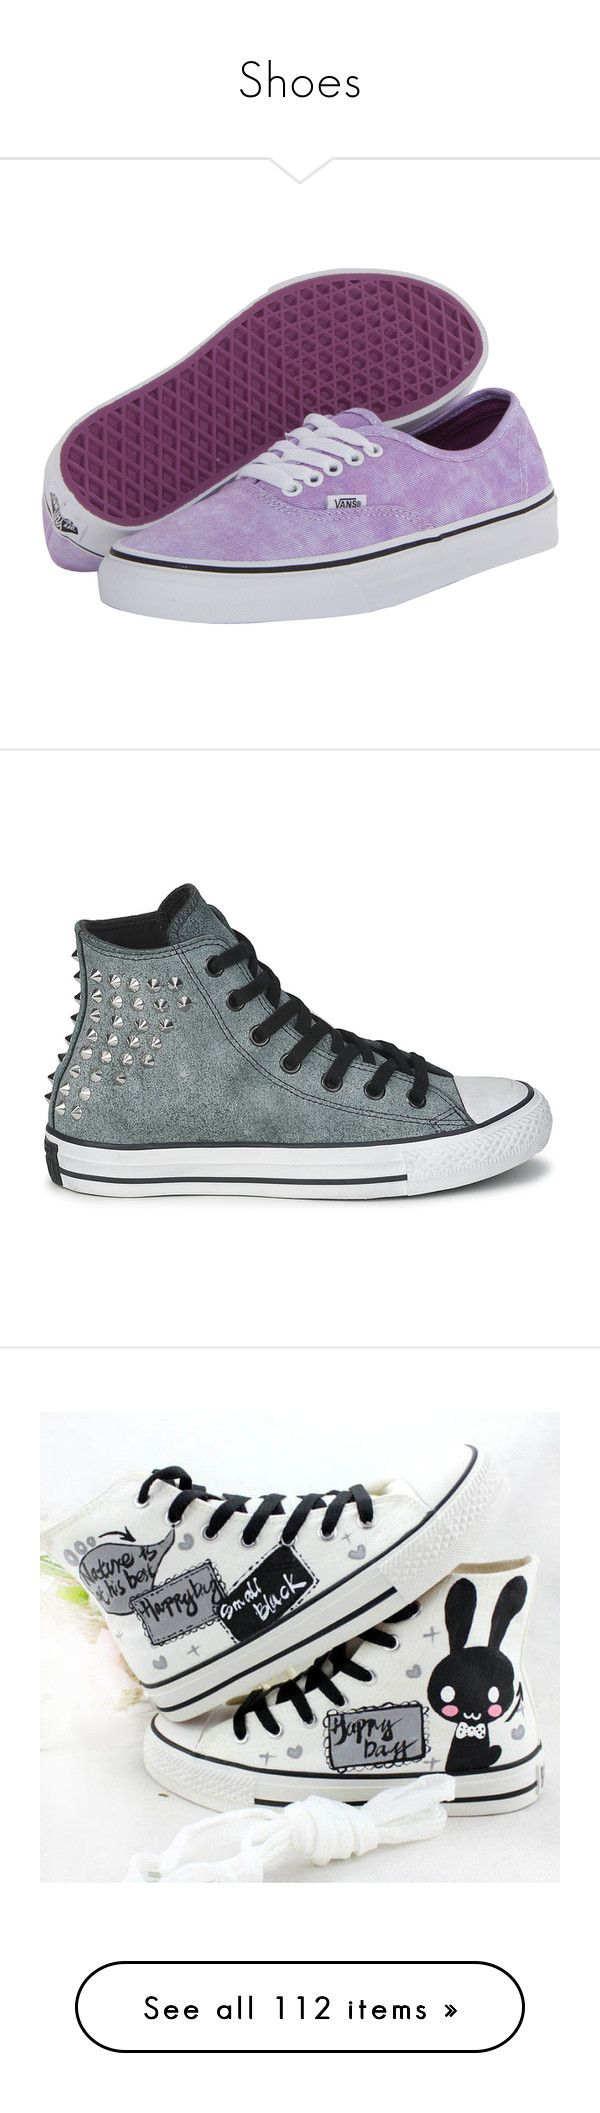 """""""Shoes"""" by freedom-to-be-me ❤ liked on Polyvore featuring shoes, sneakers, vans, purple, skate shoes, purple skate shoes, vans sneakers, purple shoes, leather skate shoes and converse"""